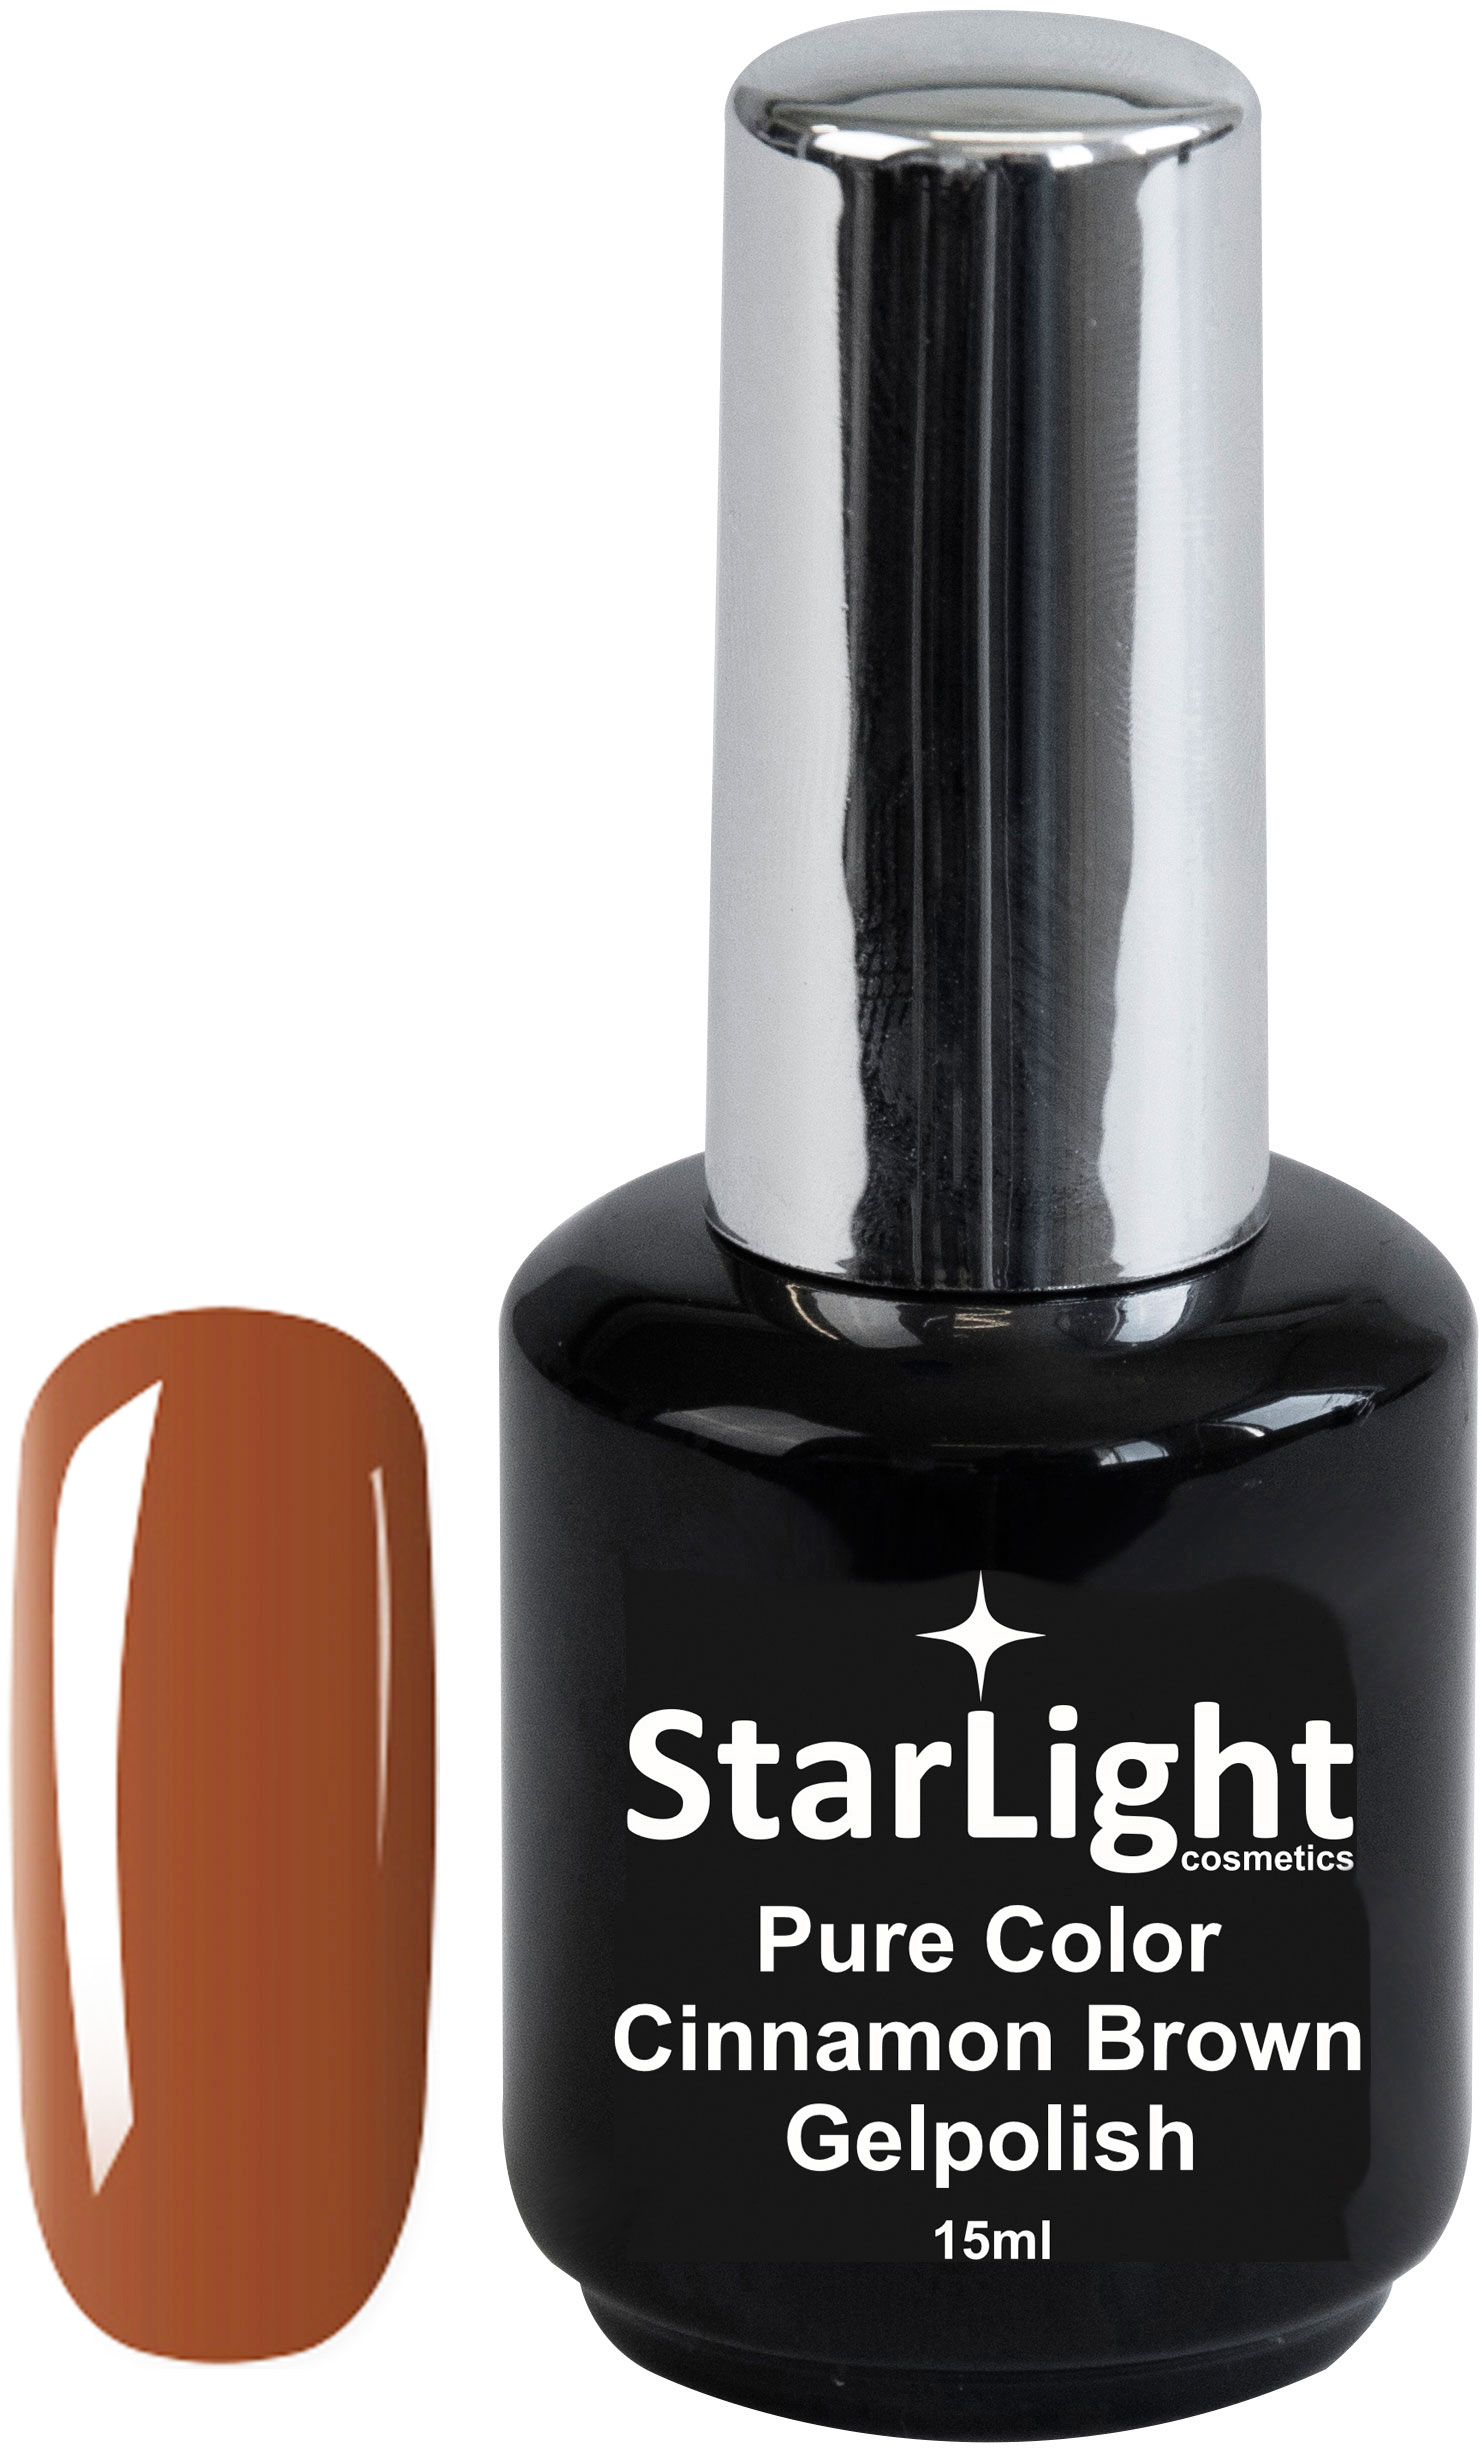 Naglar Gelpolish Pure Color Cinnamon Brown - 15 ml